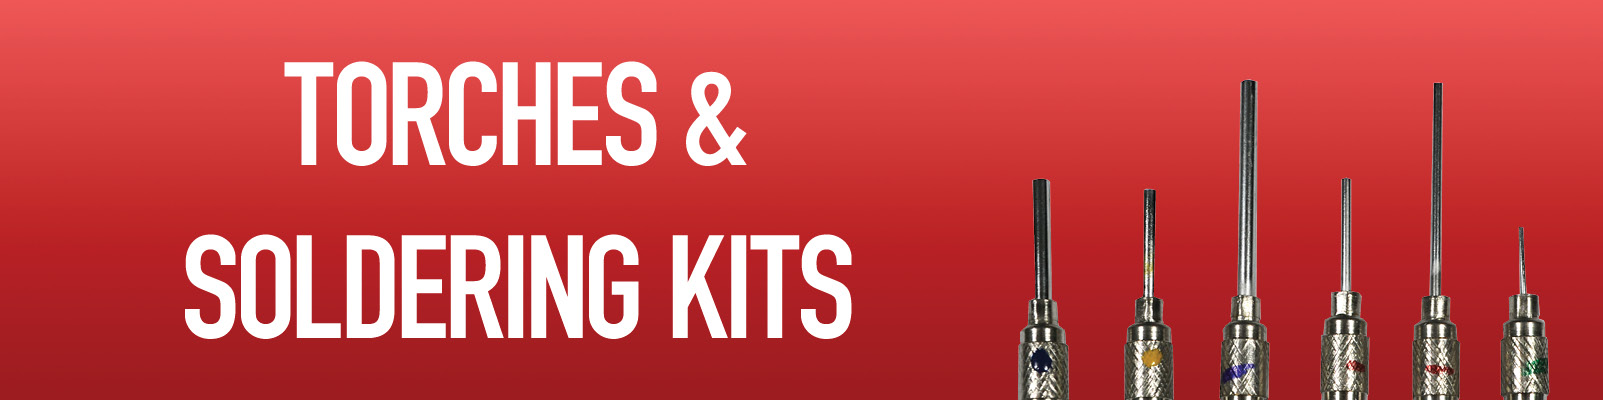 Torches / Soldering Kits